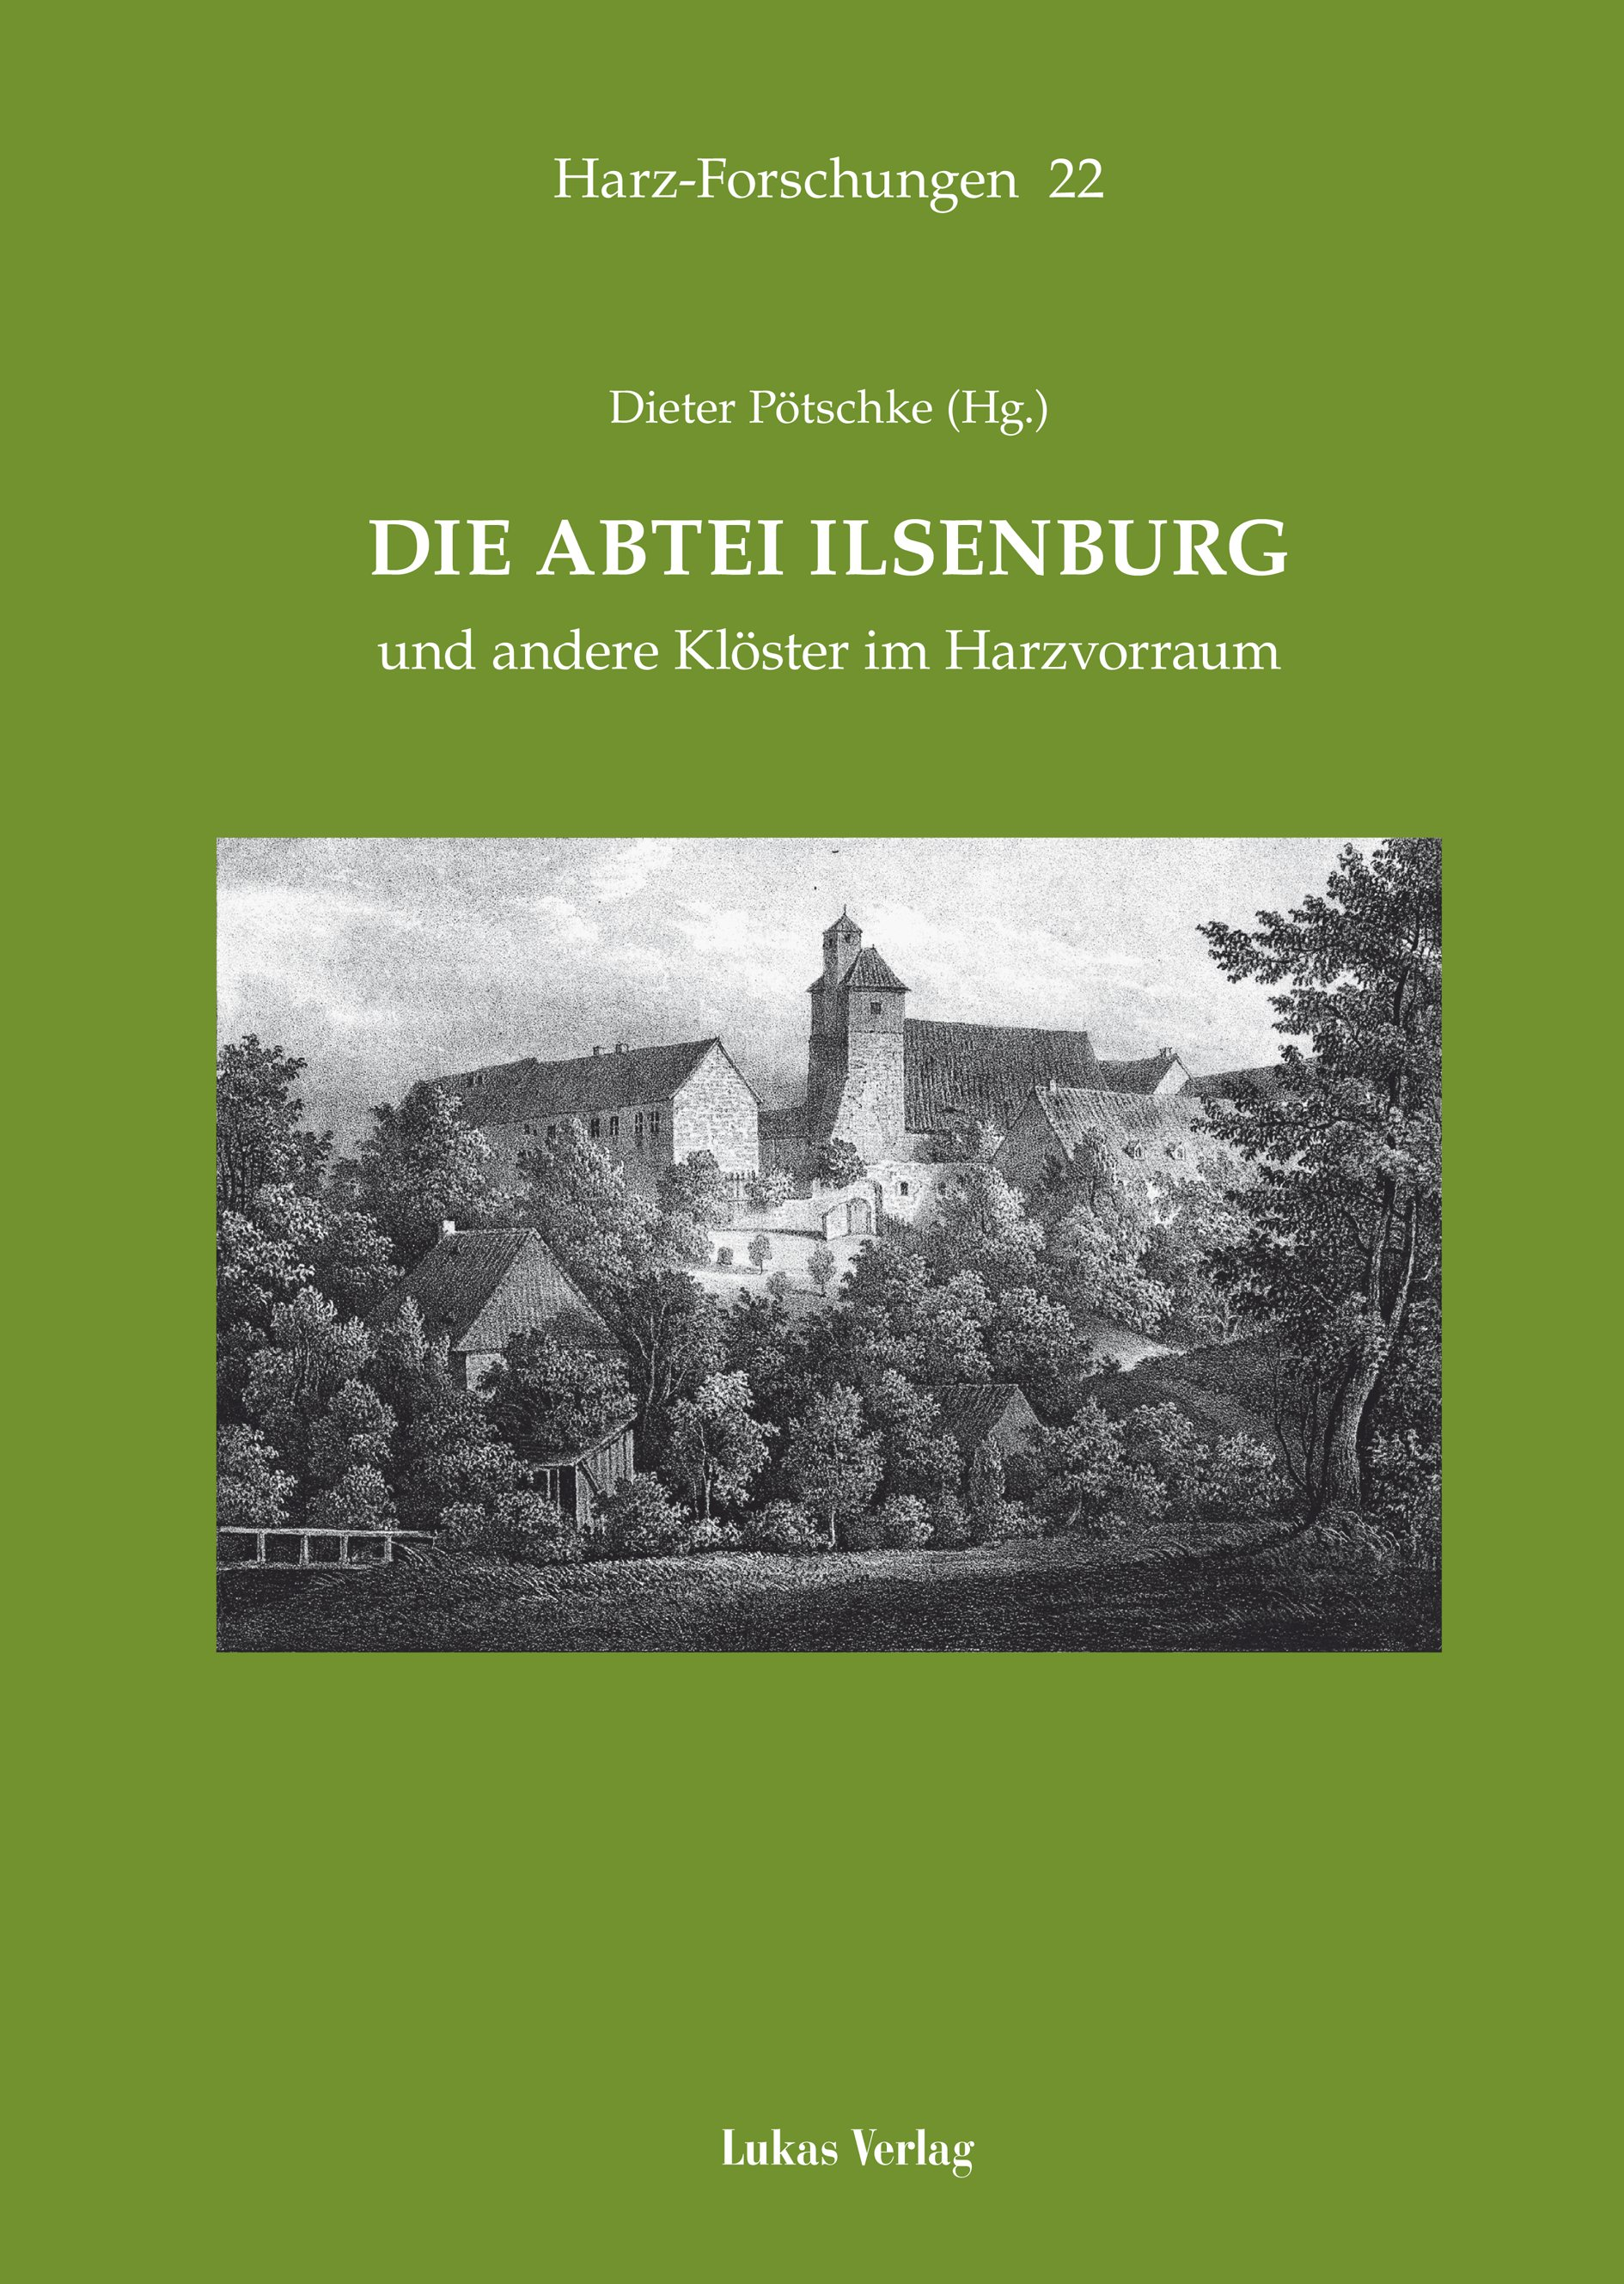 Die Abtei Ilsenburg und andere Klster im Harzvorraum